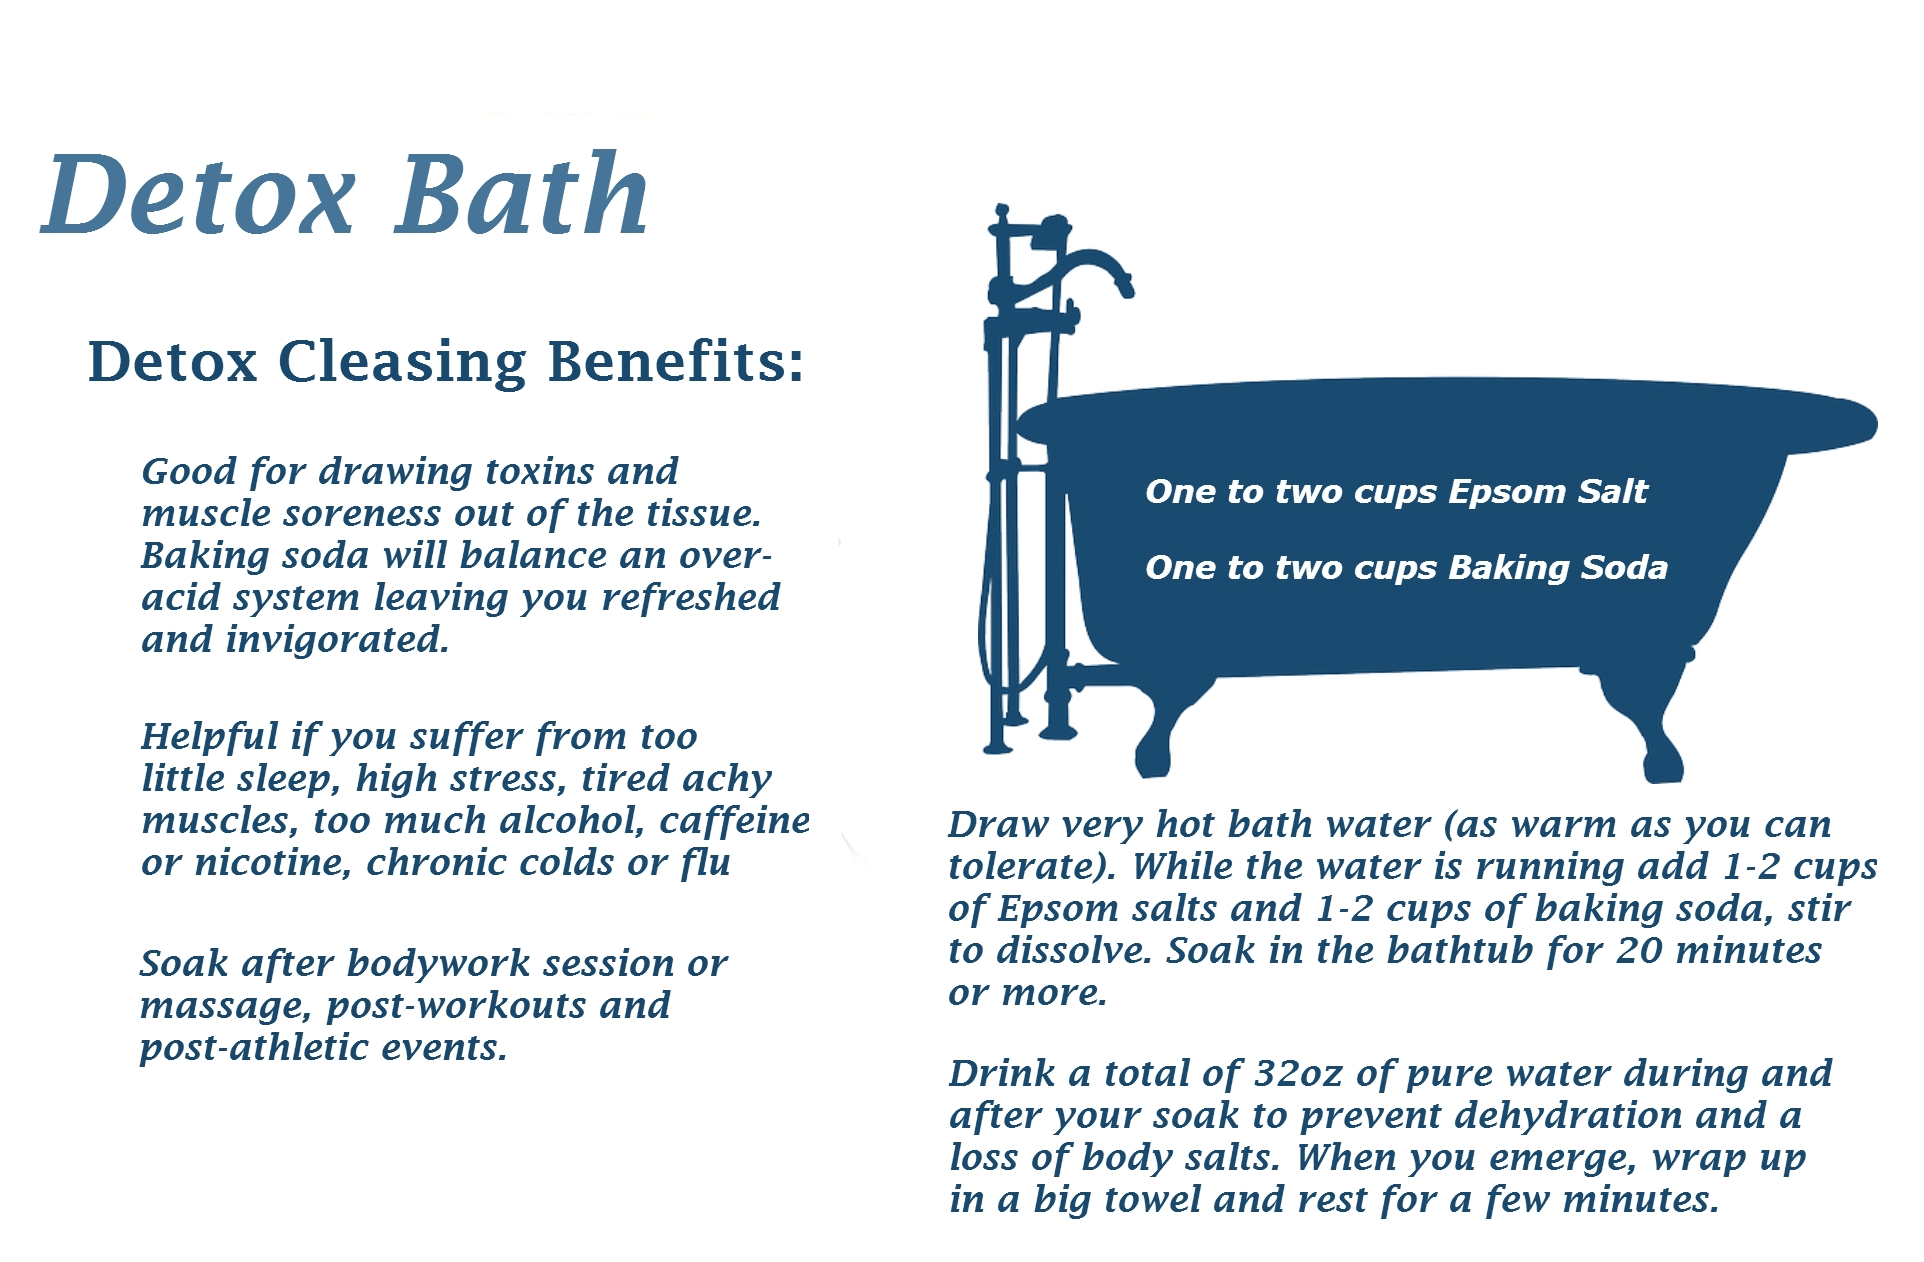 Detox Bath - Miracles of HealthMiracles of Health